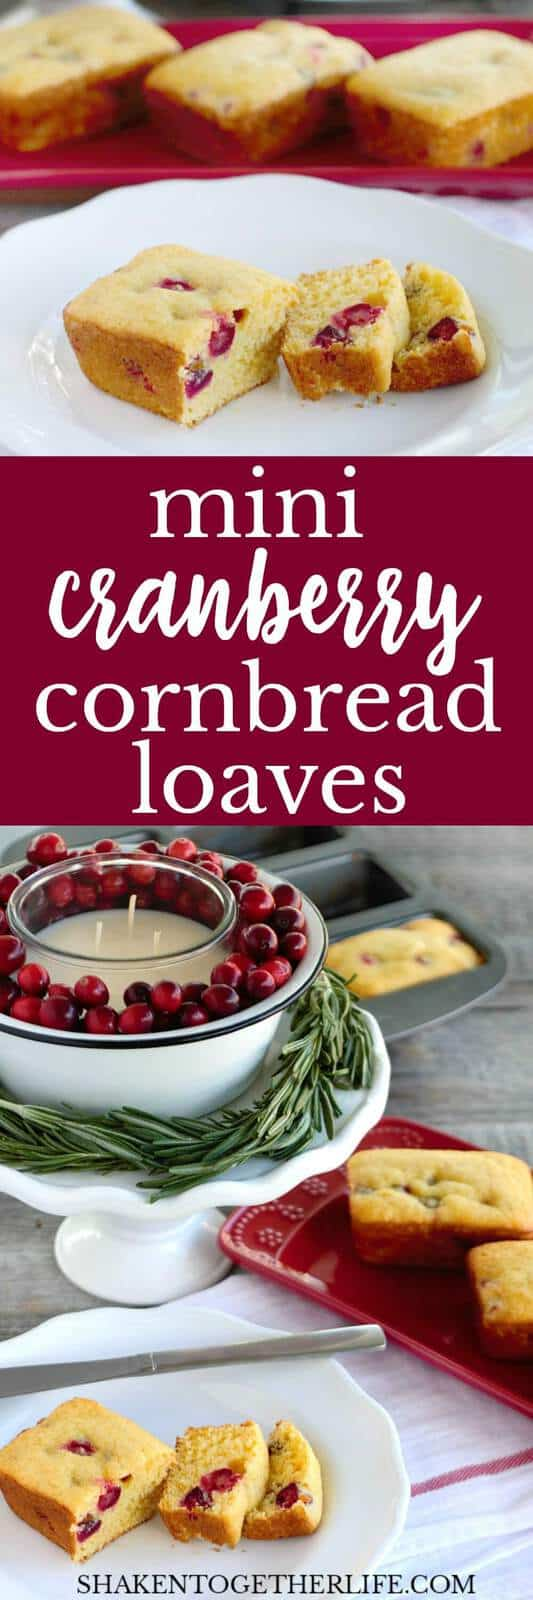 Mini Cranberry Cornbread Loaves are studded with tart cranberries and a touch of vanilla. This simple holiday side dish will steal the show at any holiday meal!